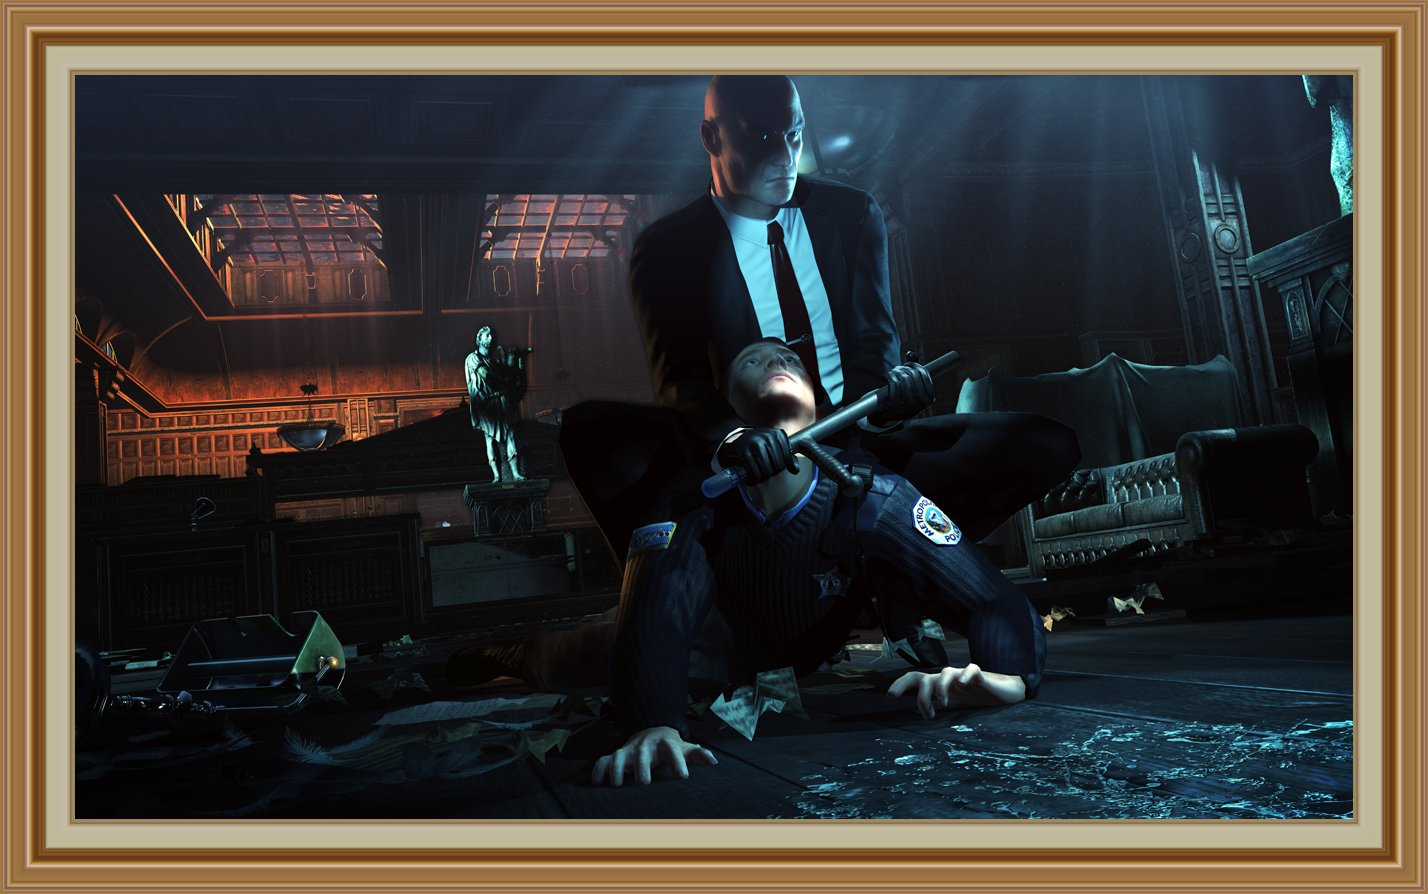 Hitman 5 Absolution PC Game Screenshot 3 By Farhankayani.Blogspot.com